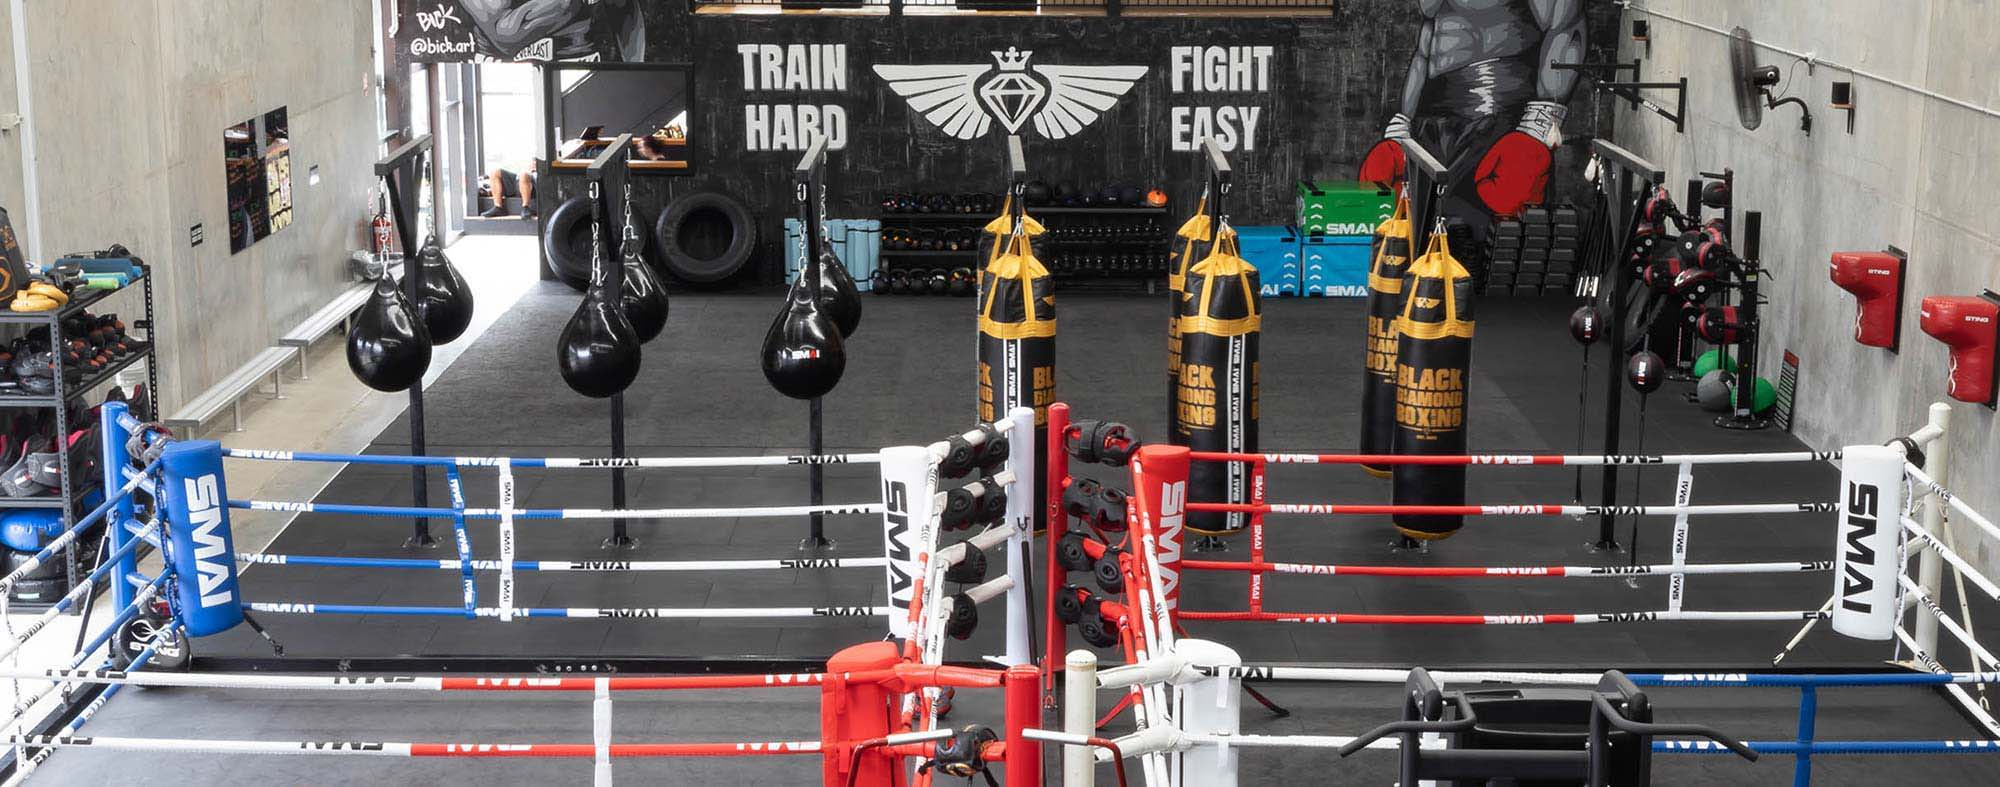 boxing gym SMAI boxing ring punching bags black diamond